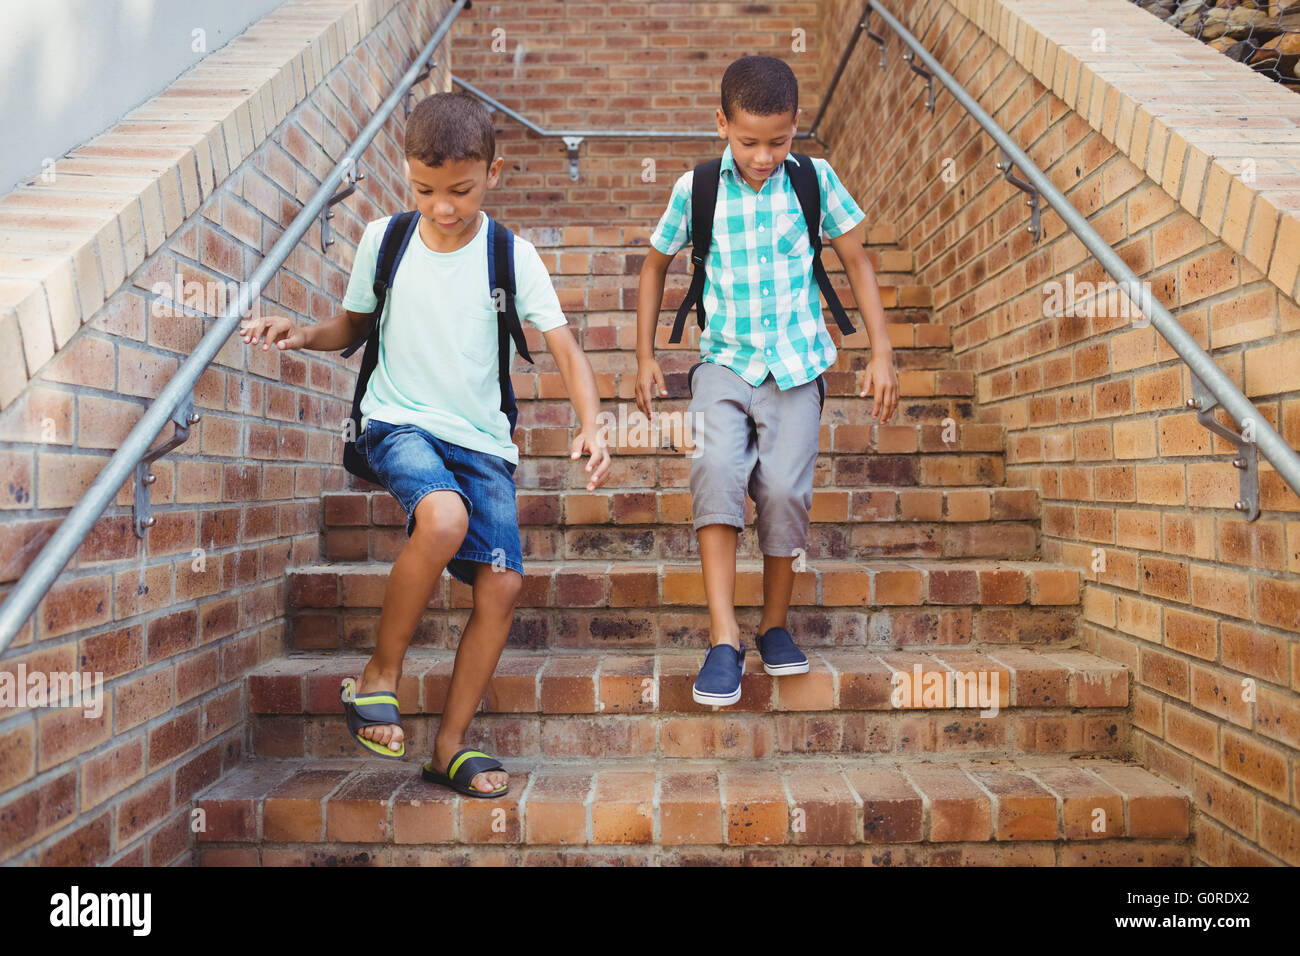 Kids Going Down The Stairs   Stock Image